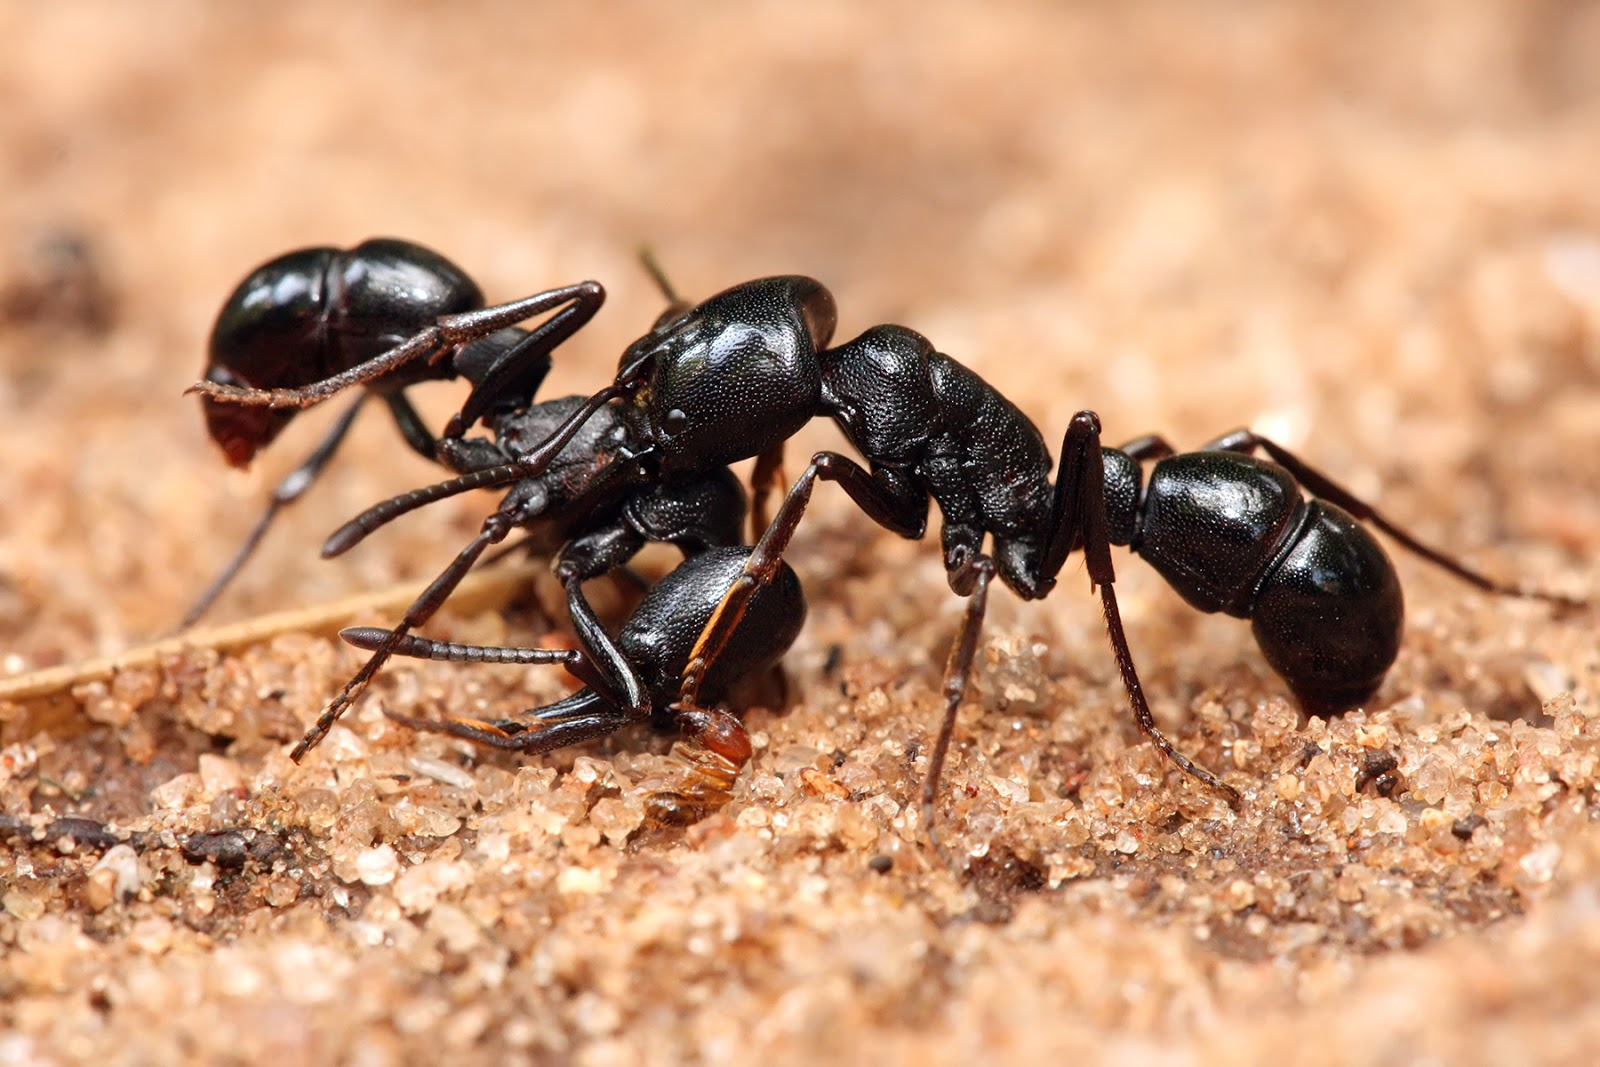 Insects: Plectroctena sp ants